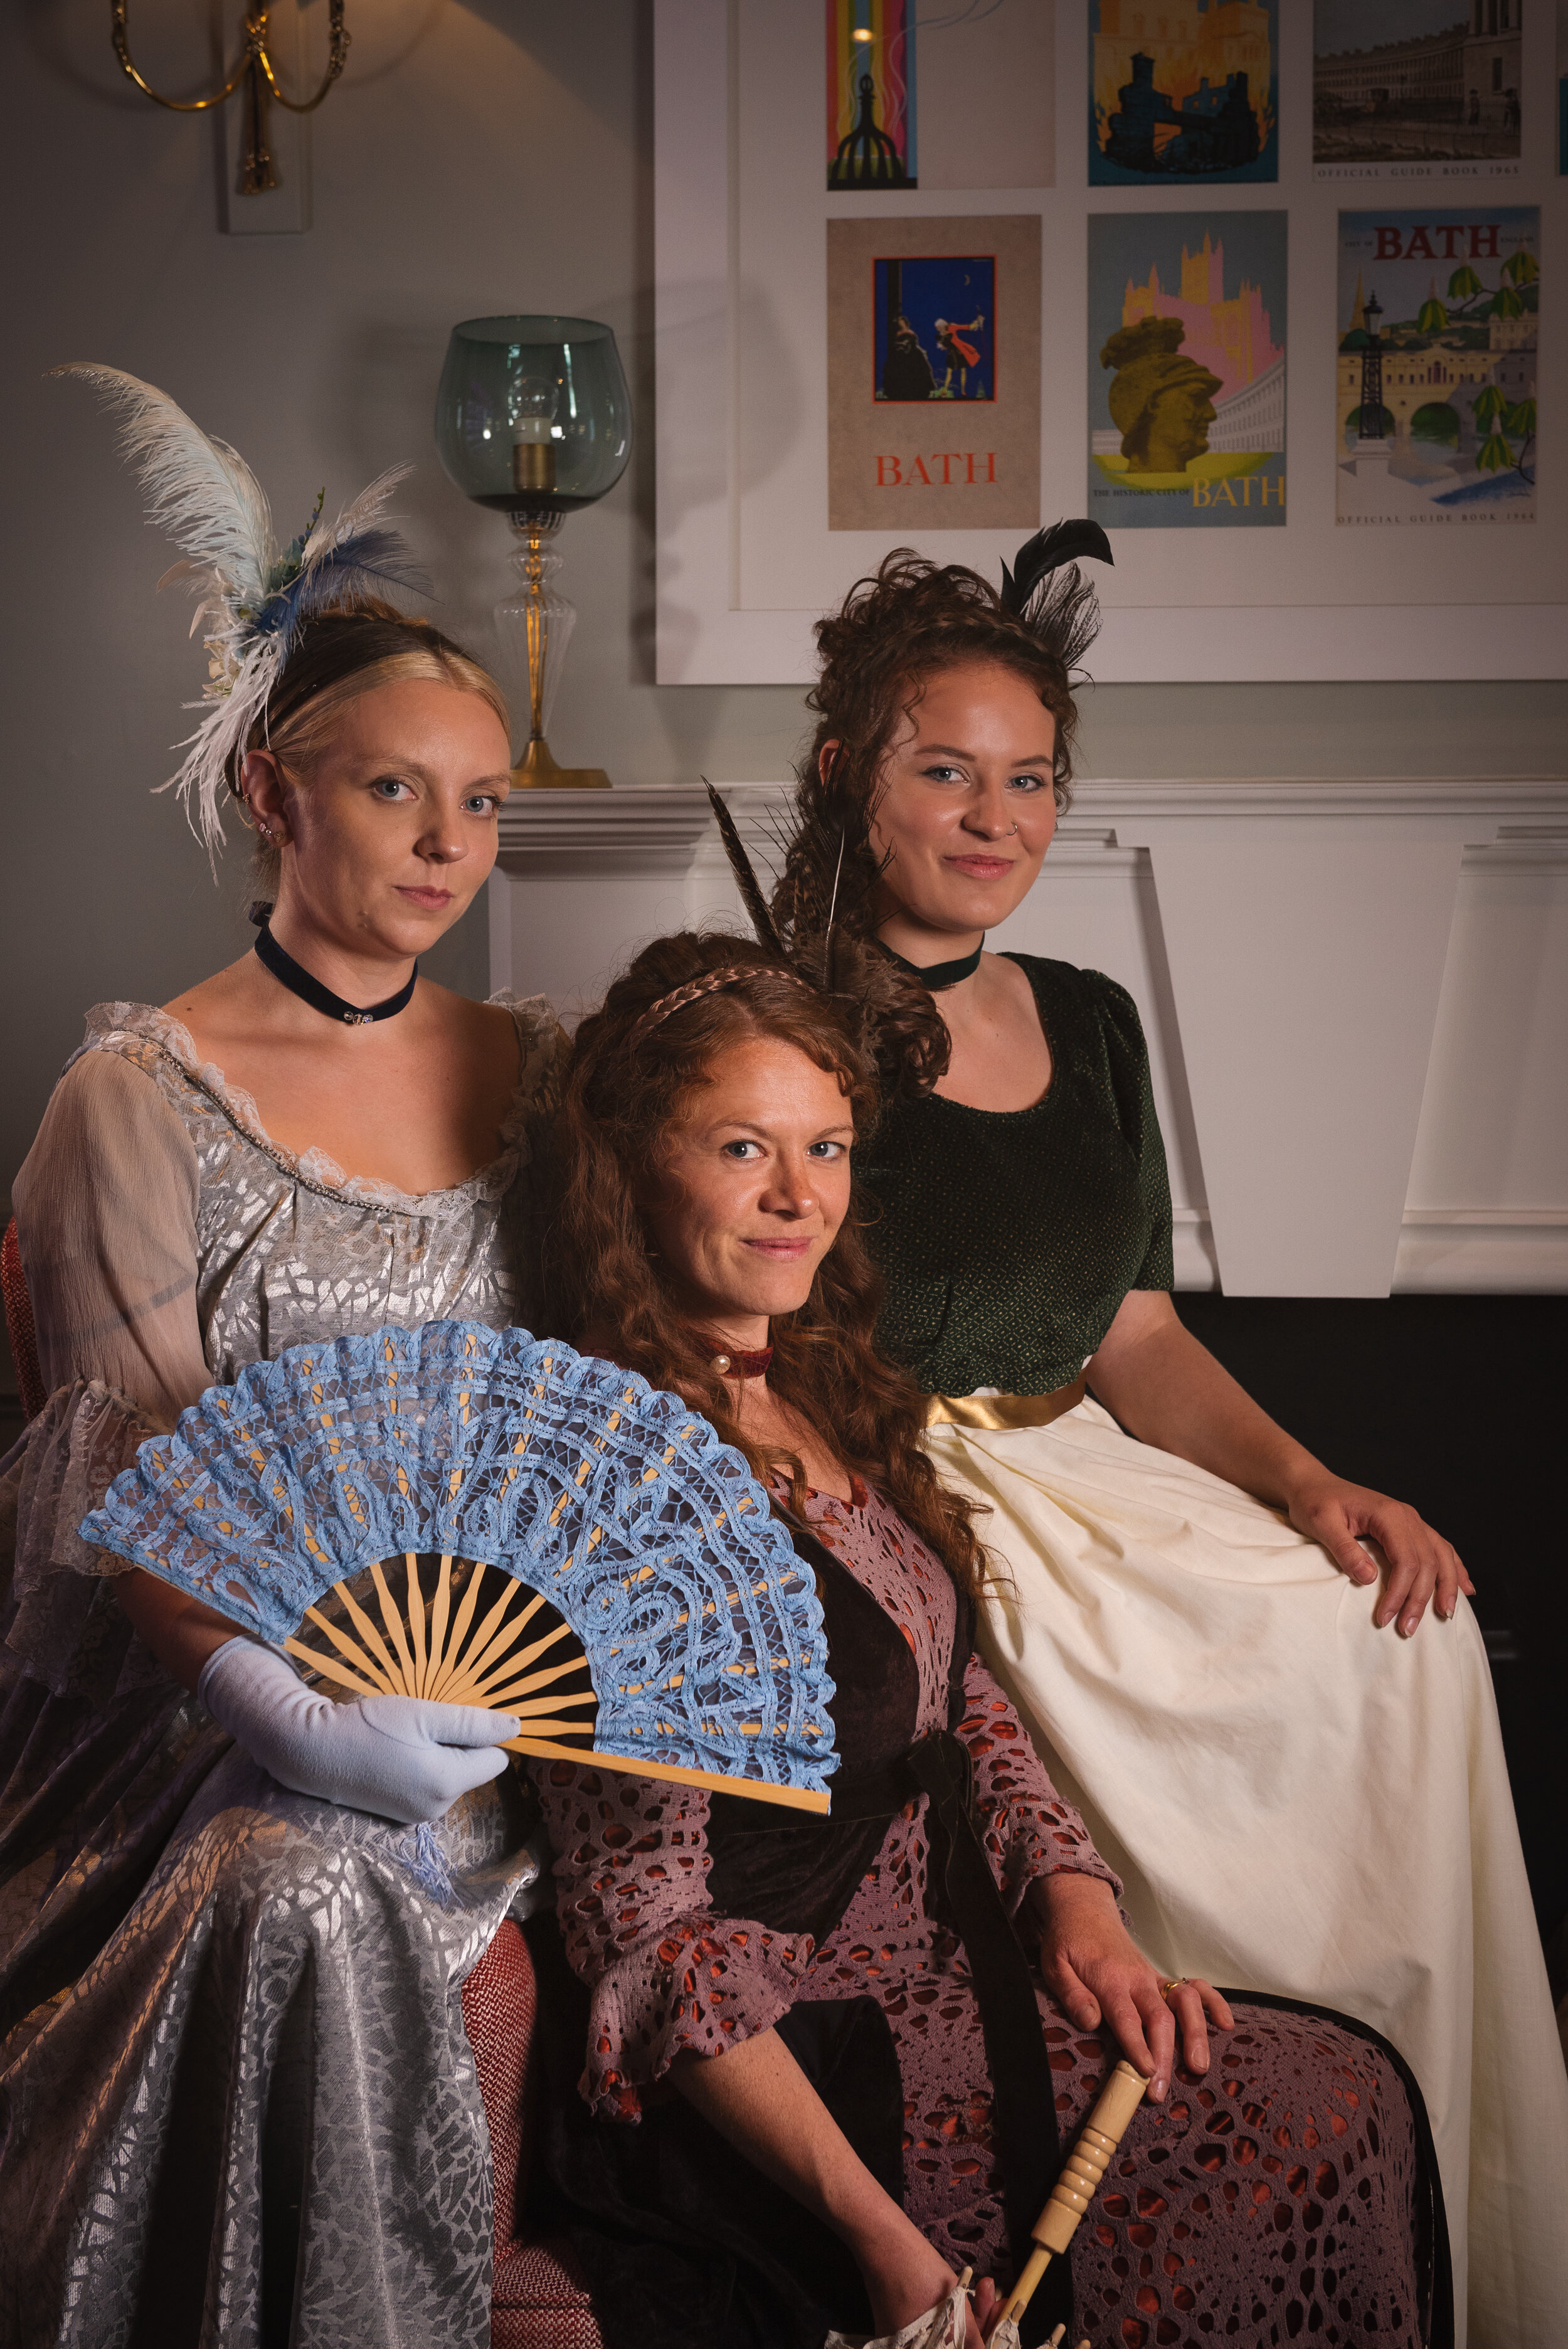 Event_20190914_Jane_Austen_Festival_Bath-1.jpg